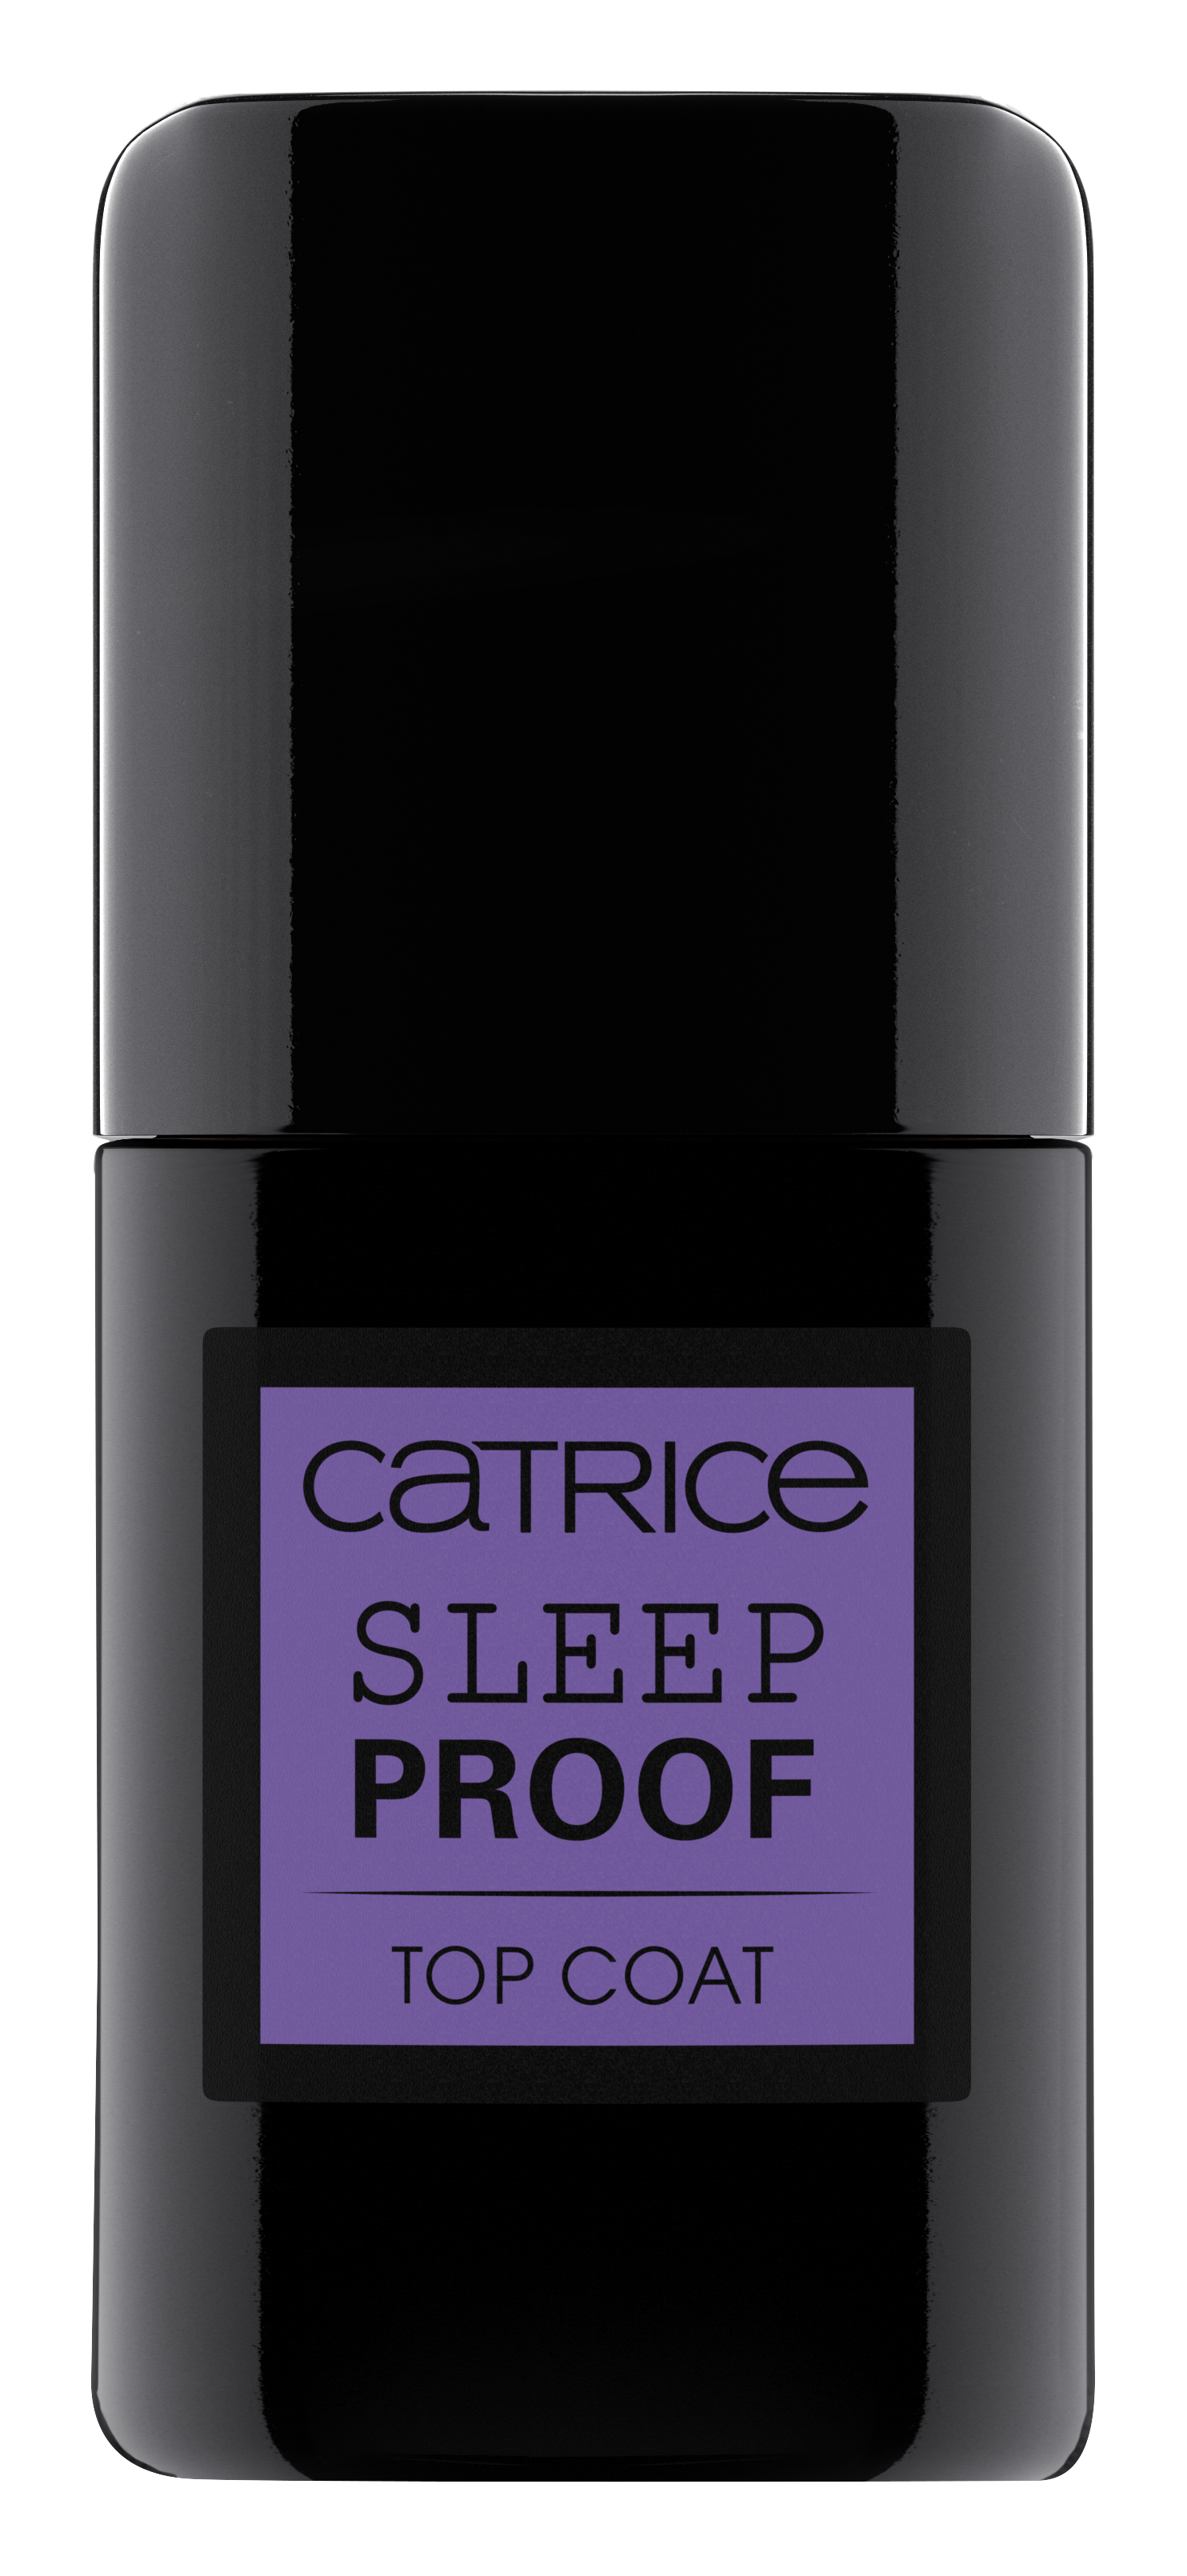 4059729250599 Catrice Sleep Proof Top Coat Image Front View Closed png - CATRICE ASSORTIMENTSUPDATE LENTE/ ZOMER 2020